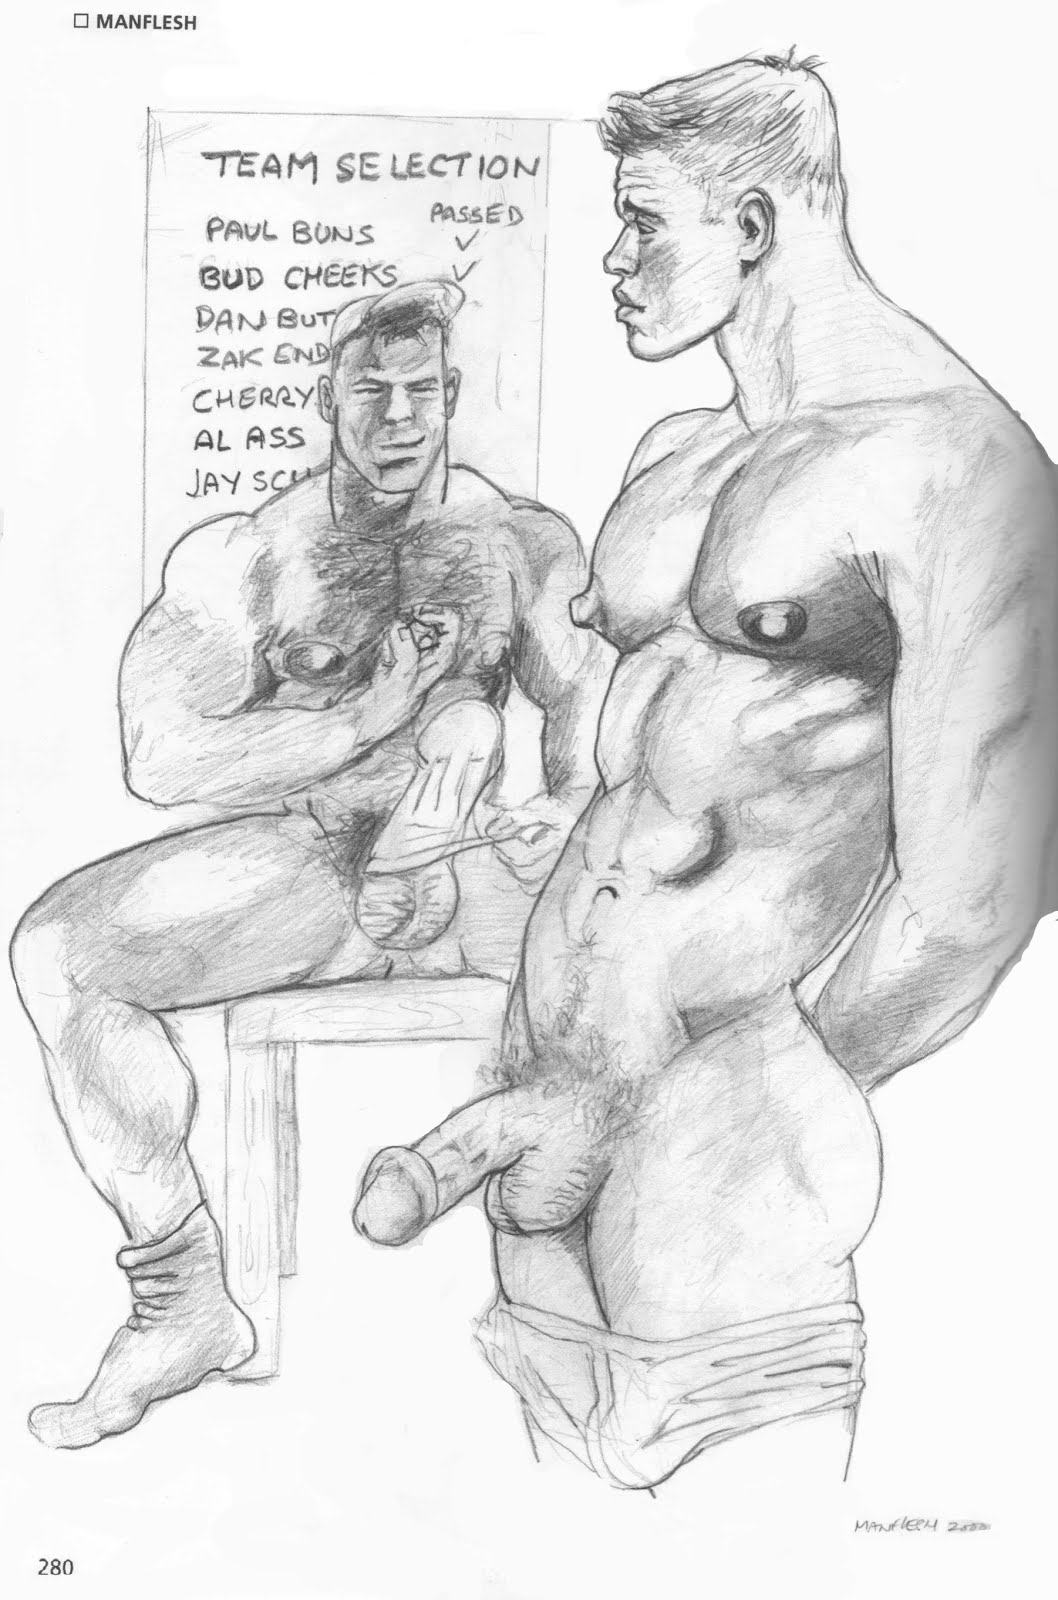 Manflesh artwork in the My Gay Eye Tom of Finland special addition